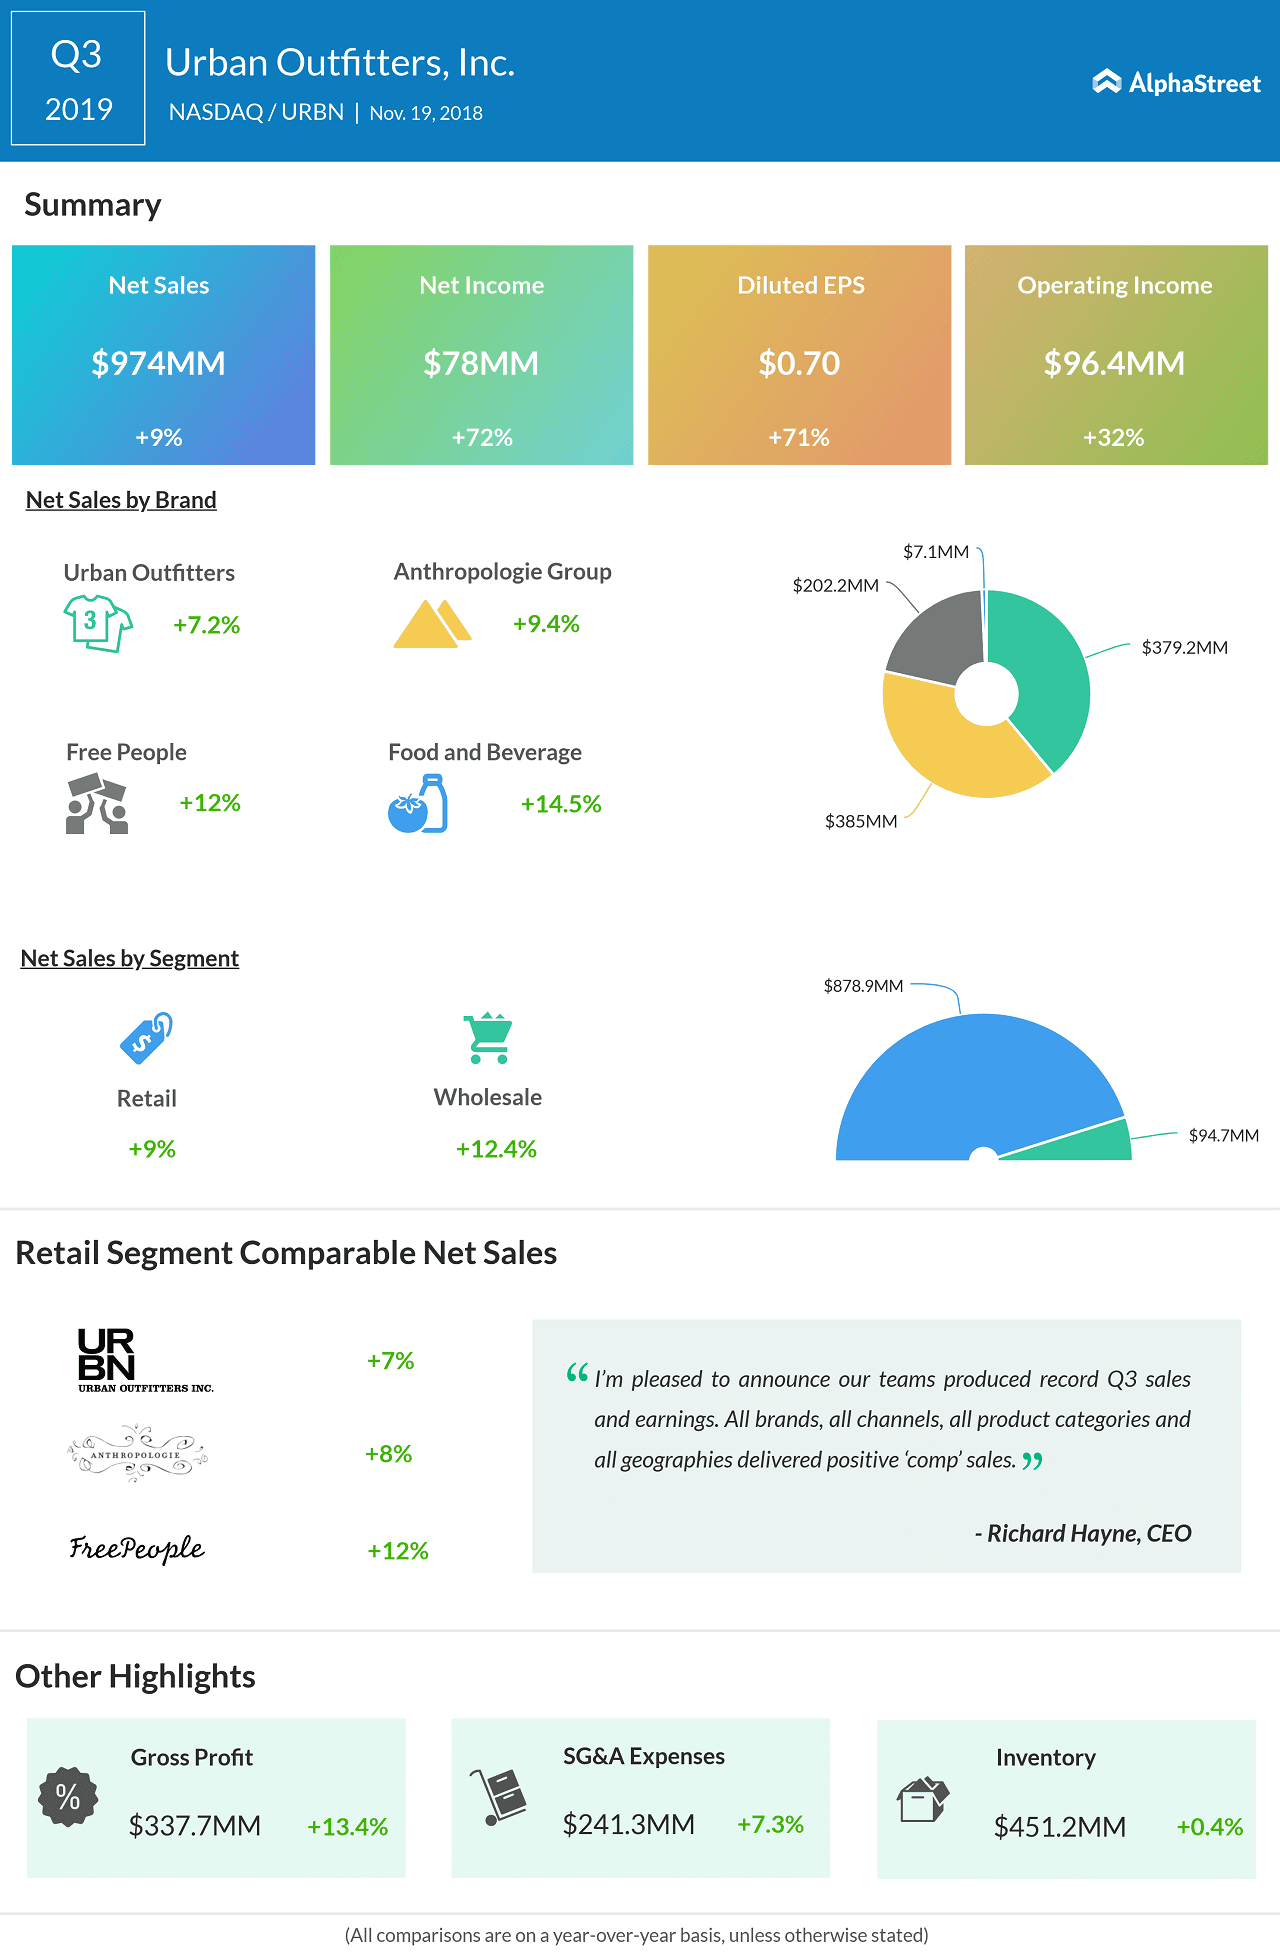 Urban Outfitters Q3 2019 earnings infographic